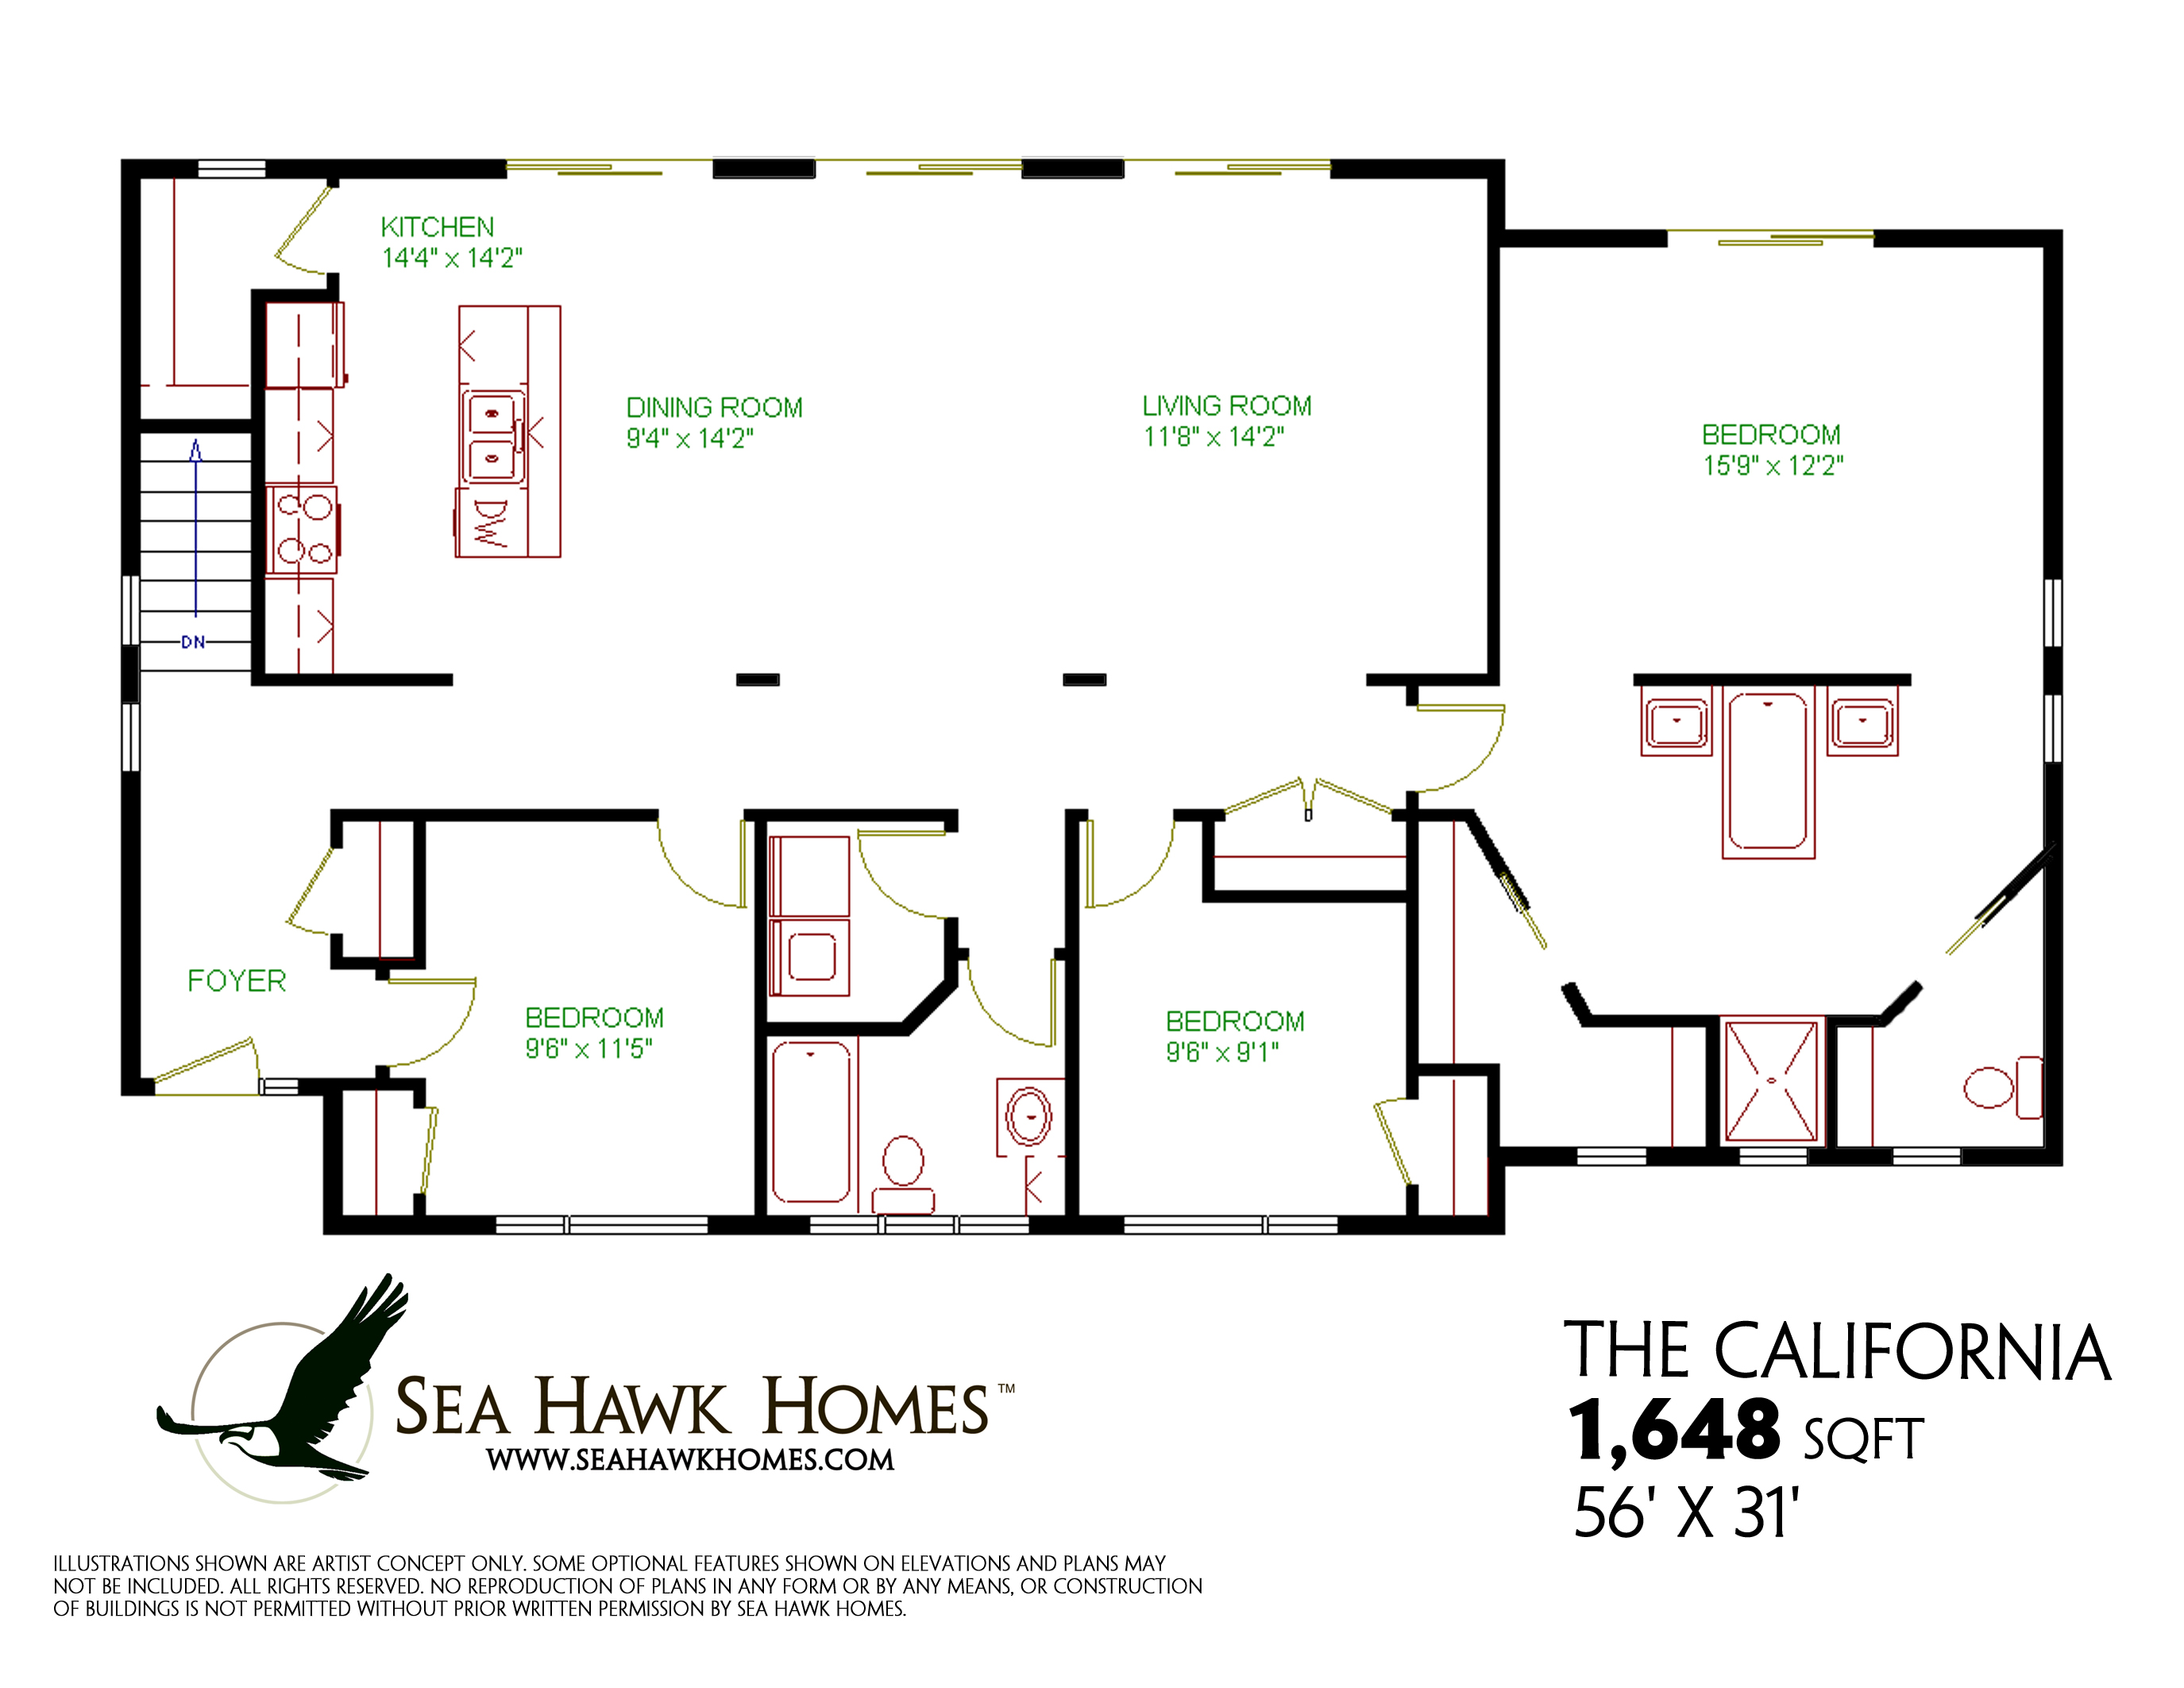 California sea hawk homes for Home plans com